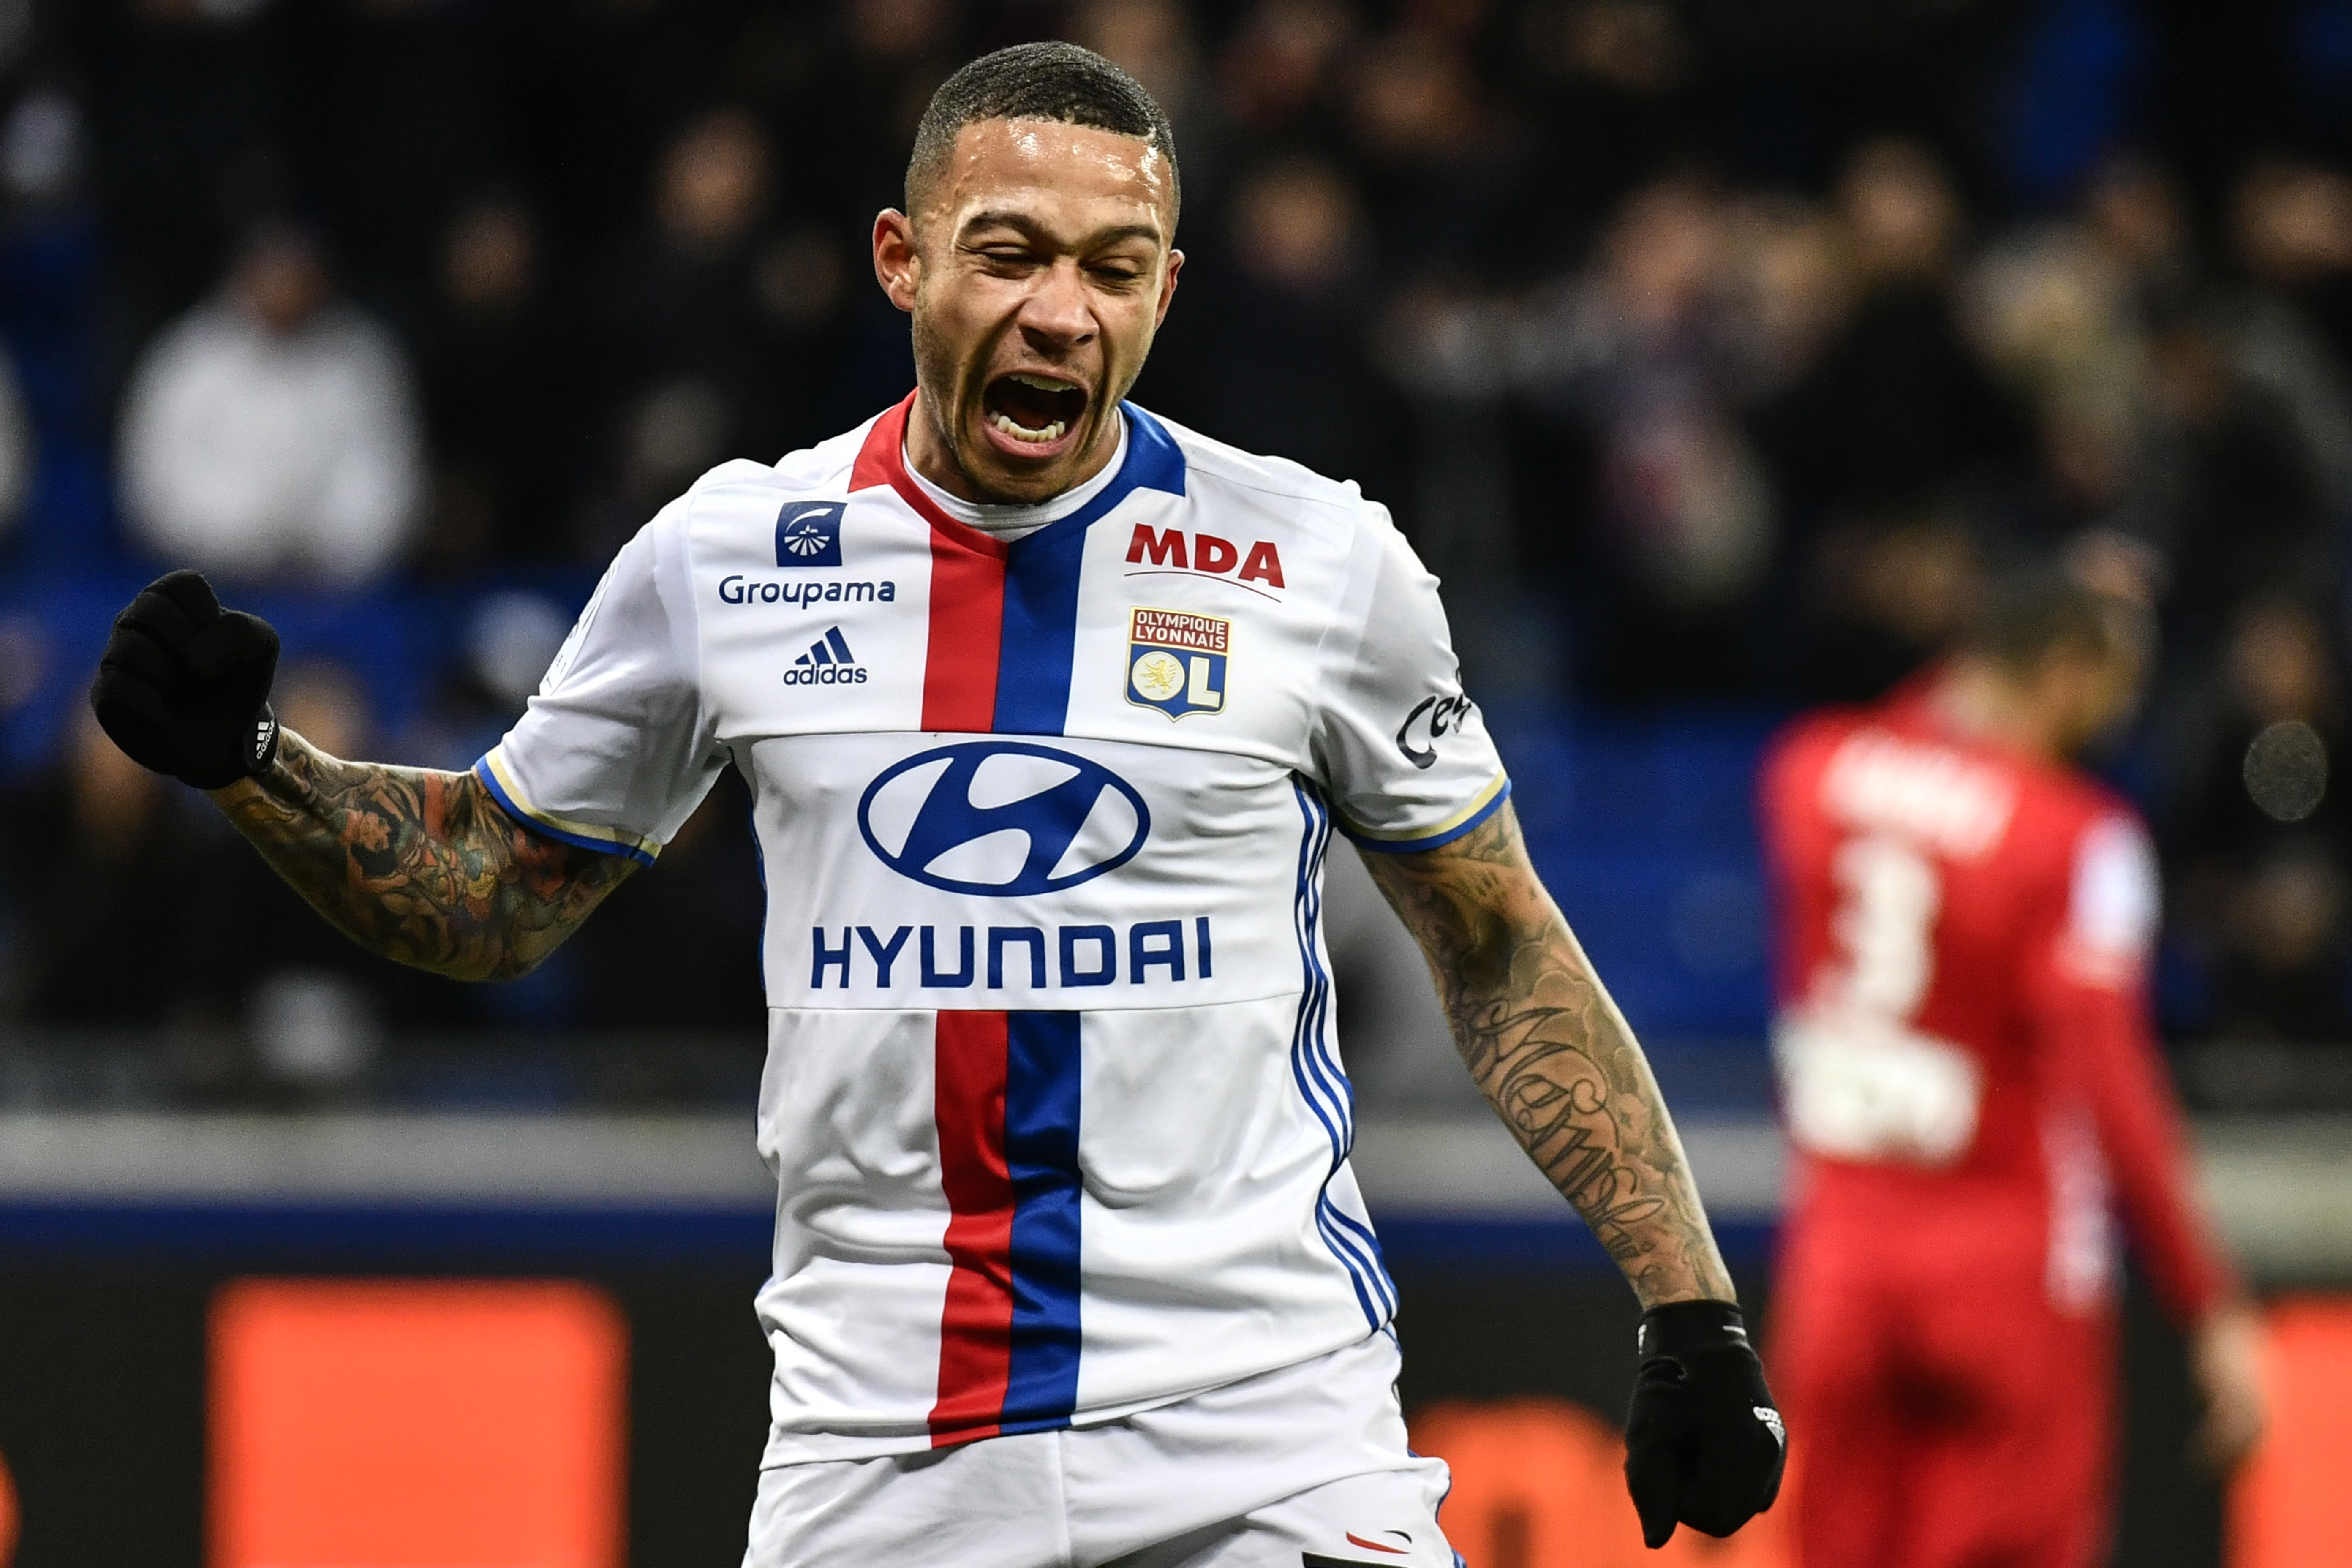 Memphis Depay's tweet spectacularly backfires as Manchester United flop hits new low at Lyon